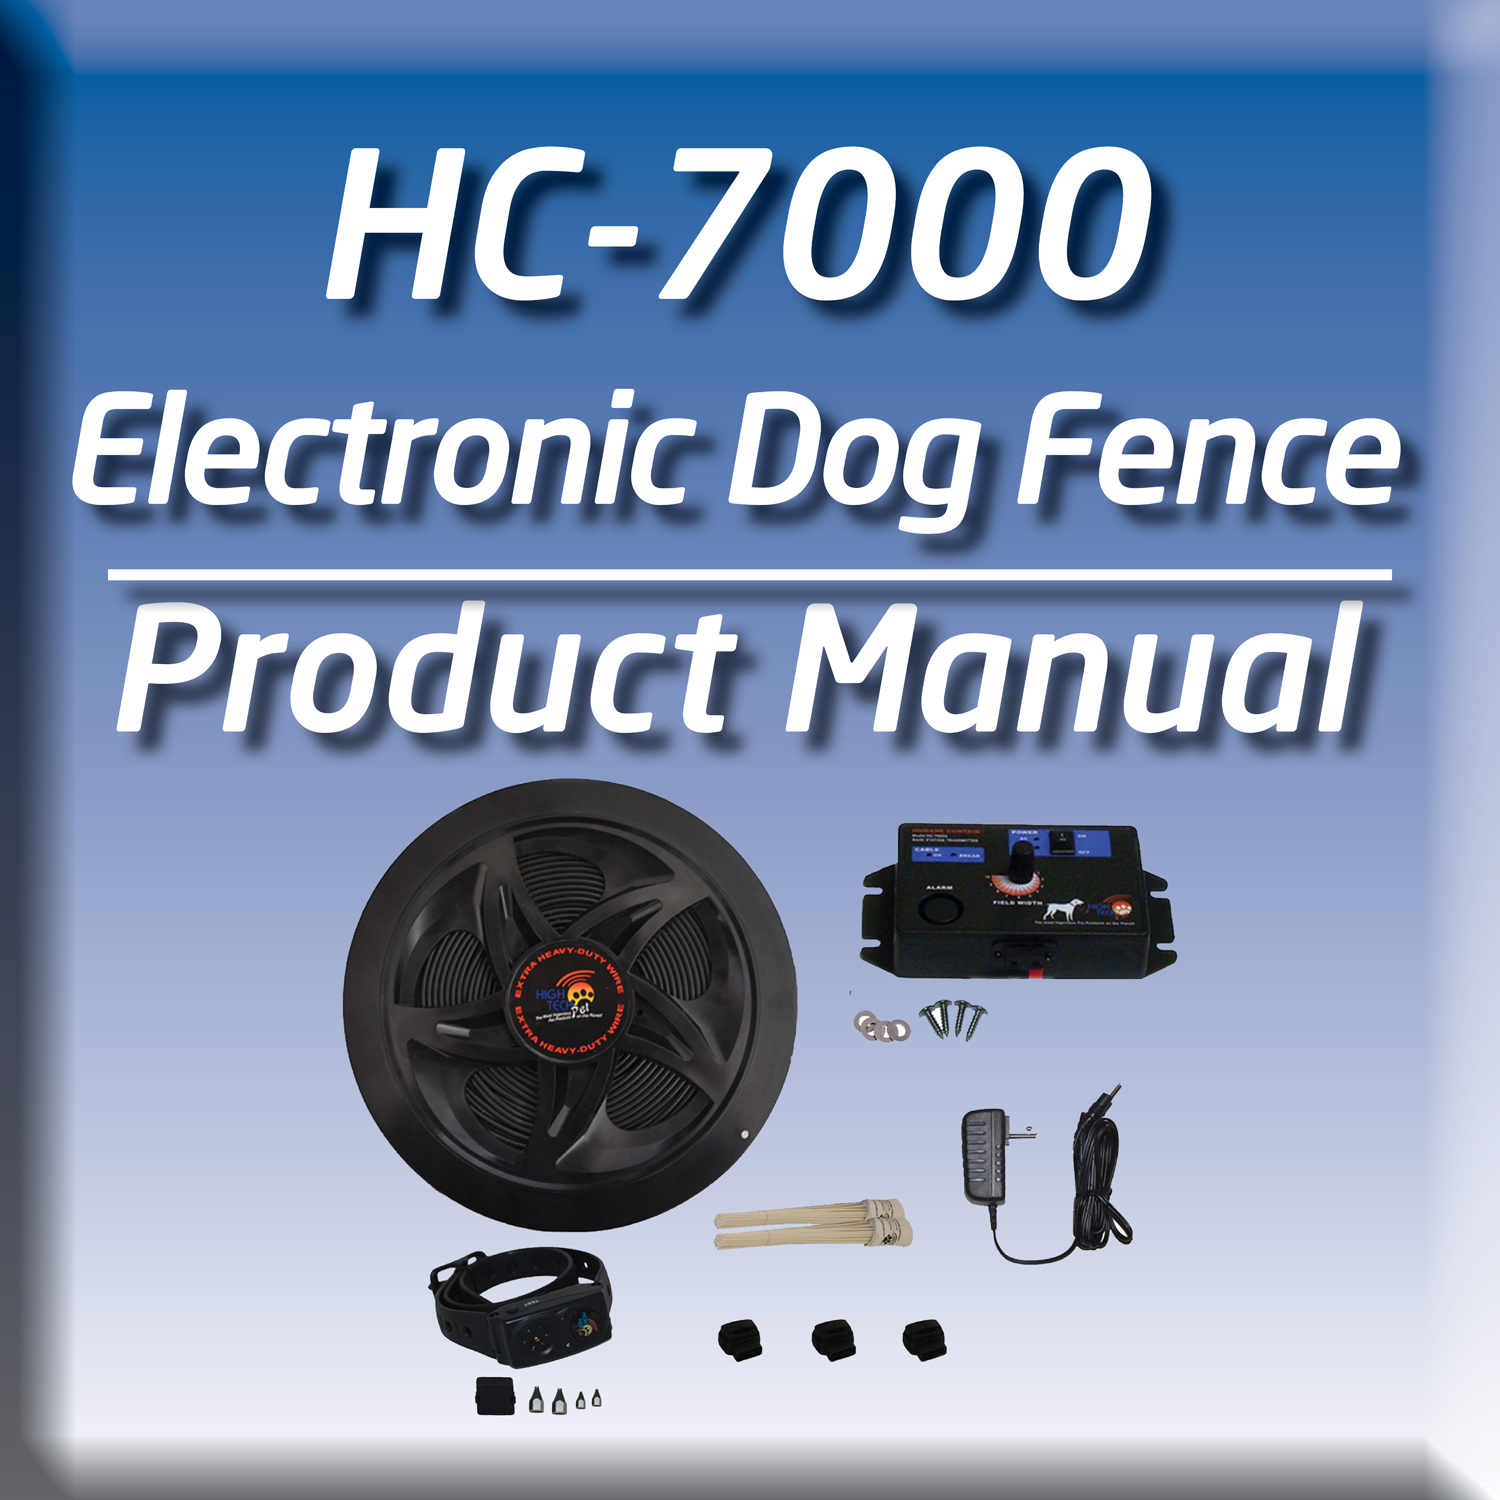 Our electric dog fence manual is here to help